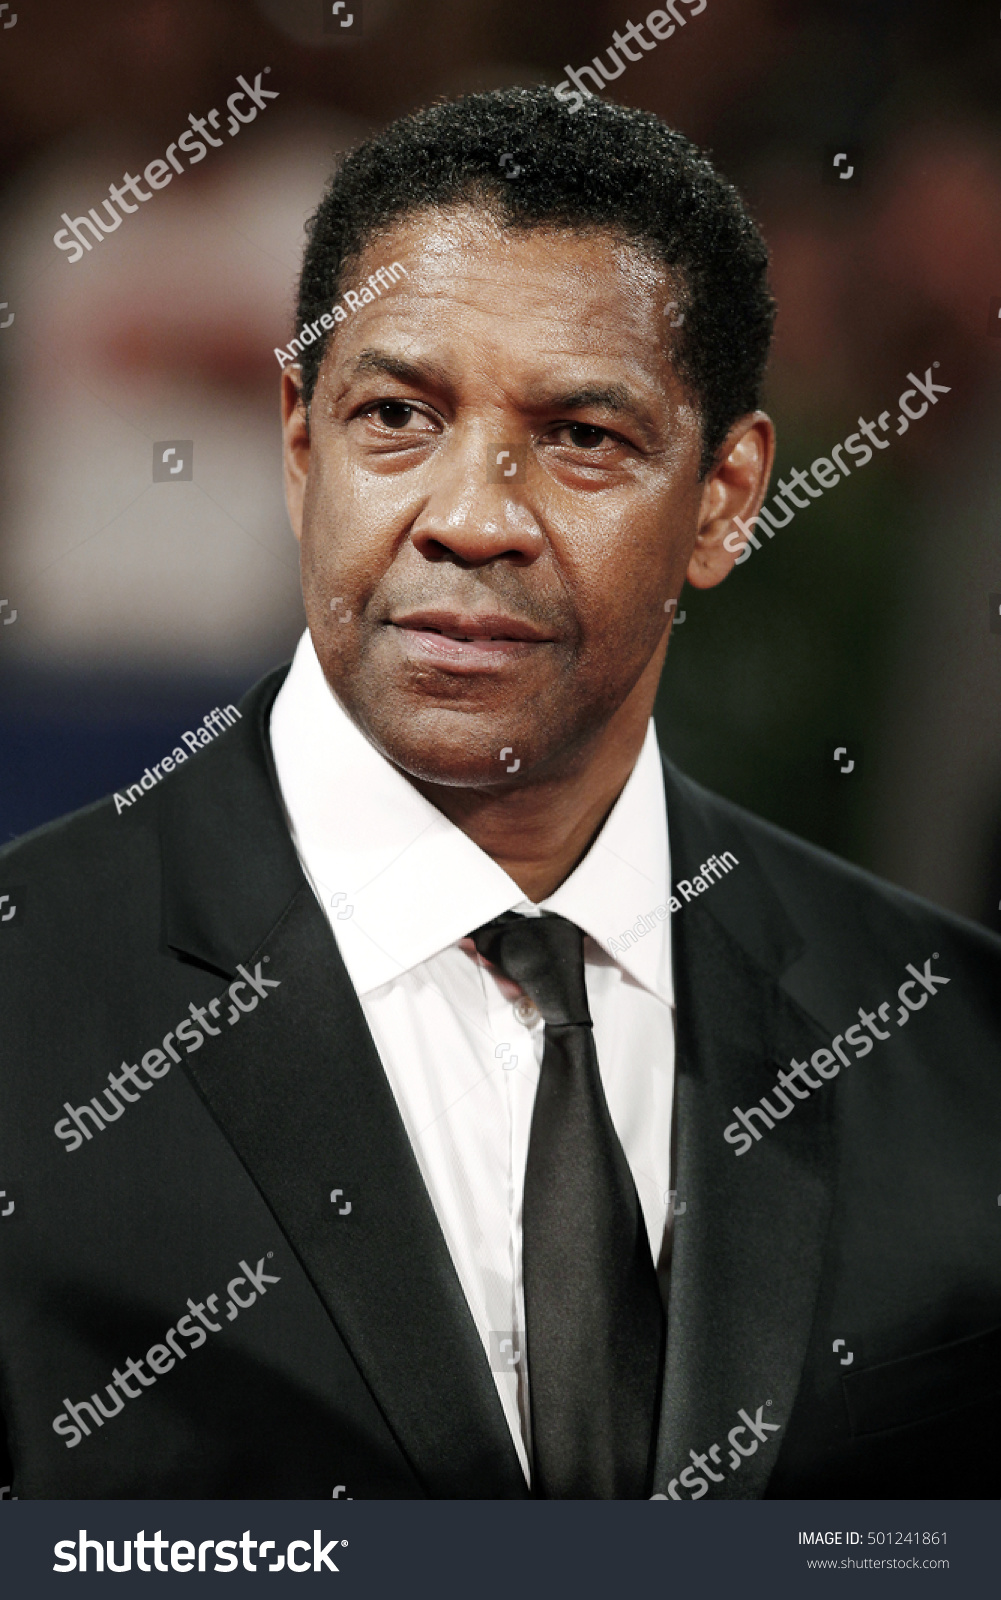 VENICE ITALY SEPTEMBER 10 Denzel Washington attends the premiere of The Magnificent Seven during the 73rd Venice Film Festival on September 10 2016 in Venice Italy